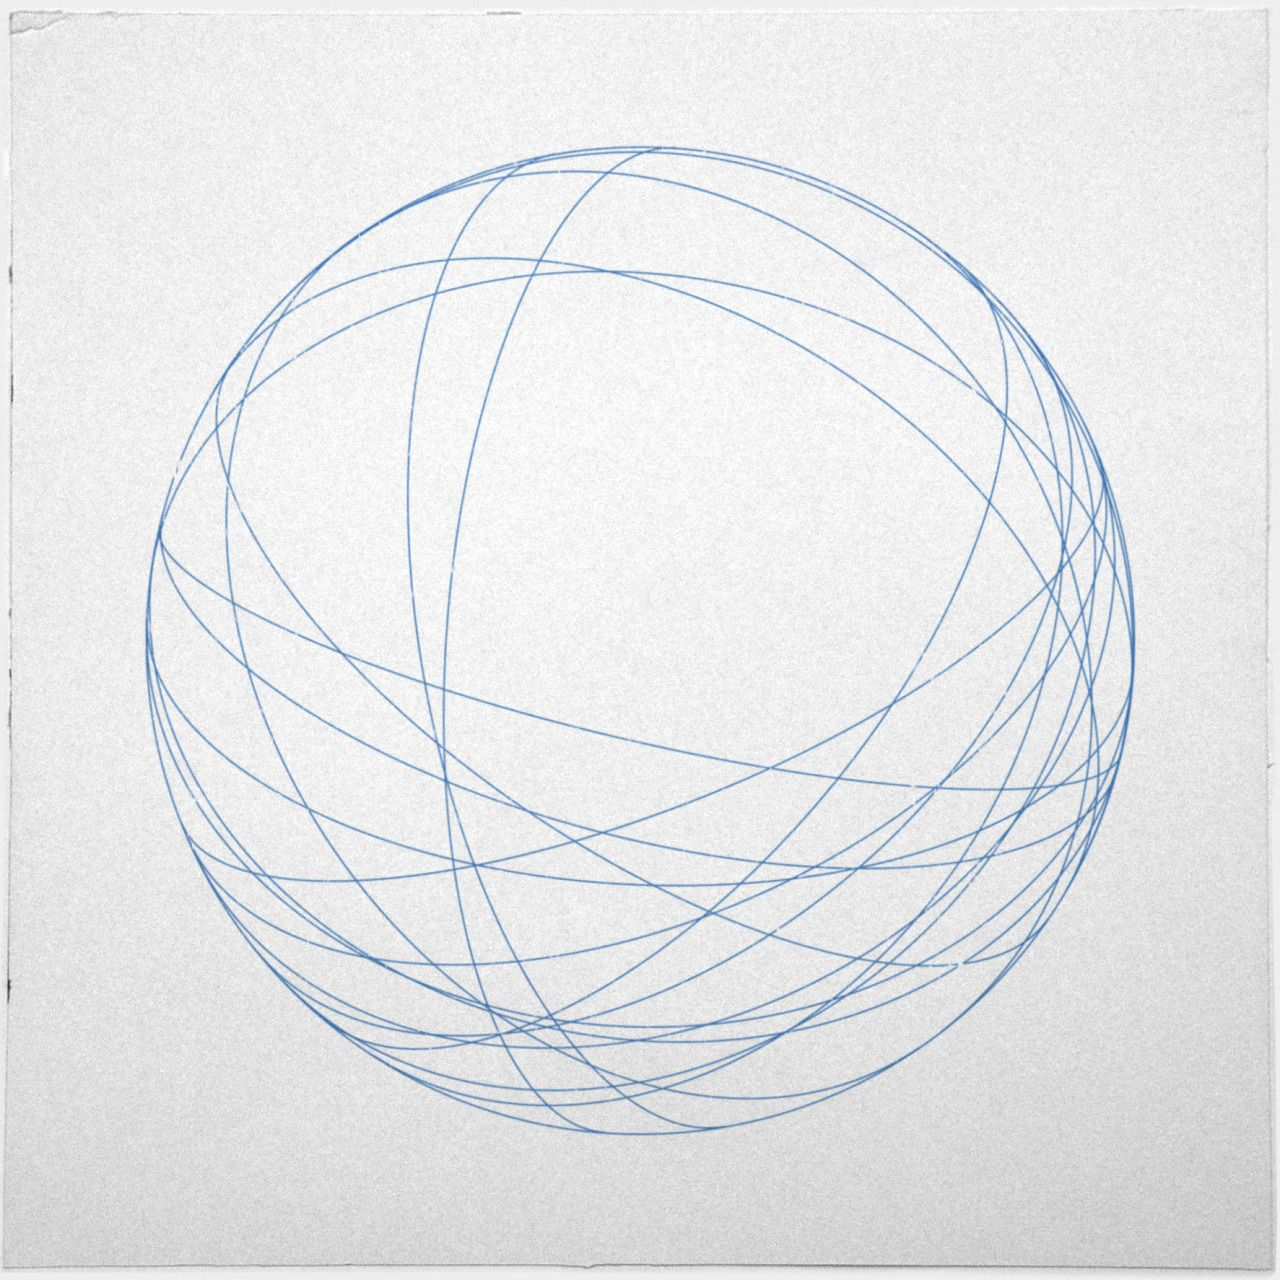 491 Orbits A New Minimal Geometric Composition Each Day